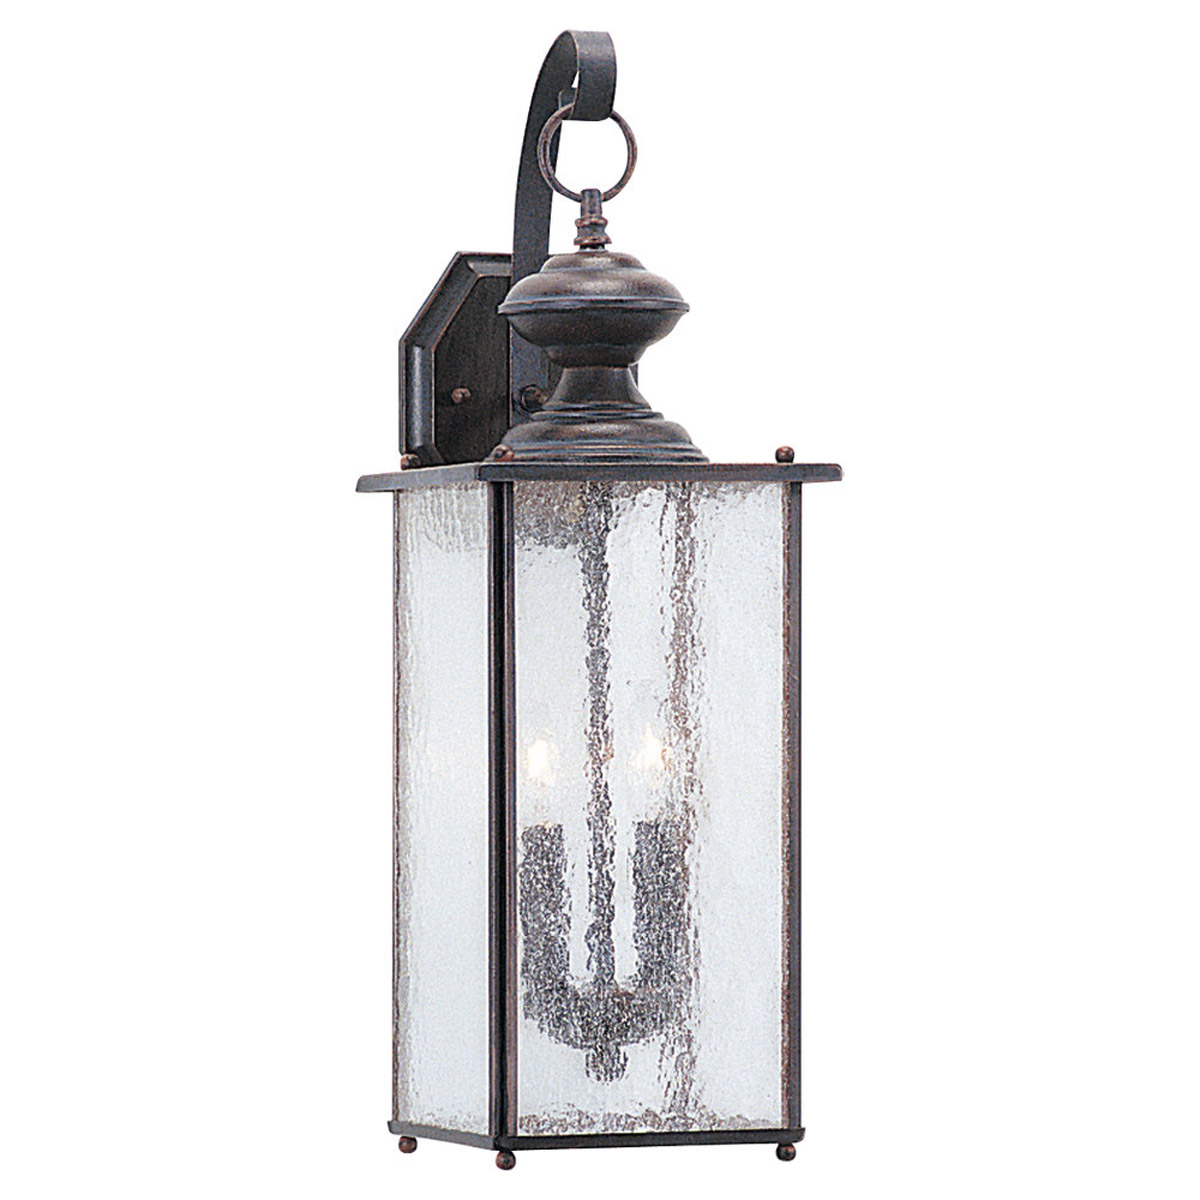 Sea Gull Lighting Jamestowne 2 Light Outdoor Wall Lantern in Textured Rust Patina 8883-08